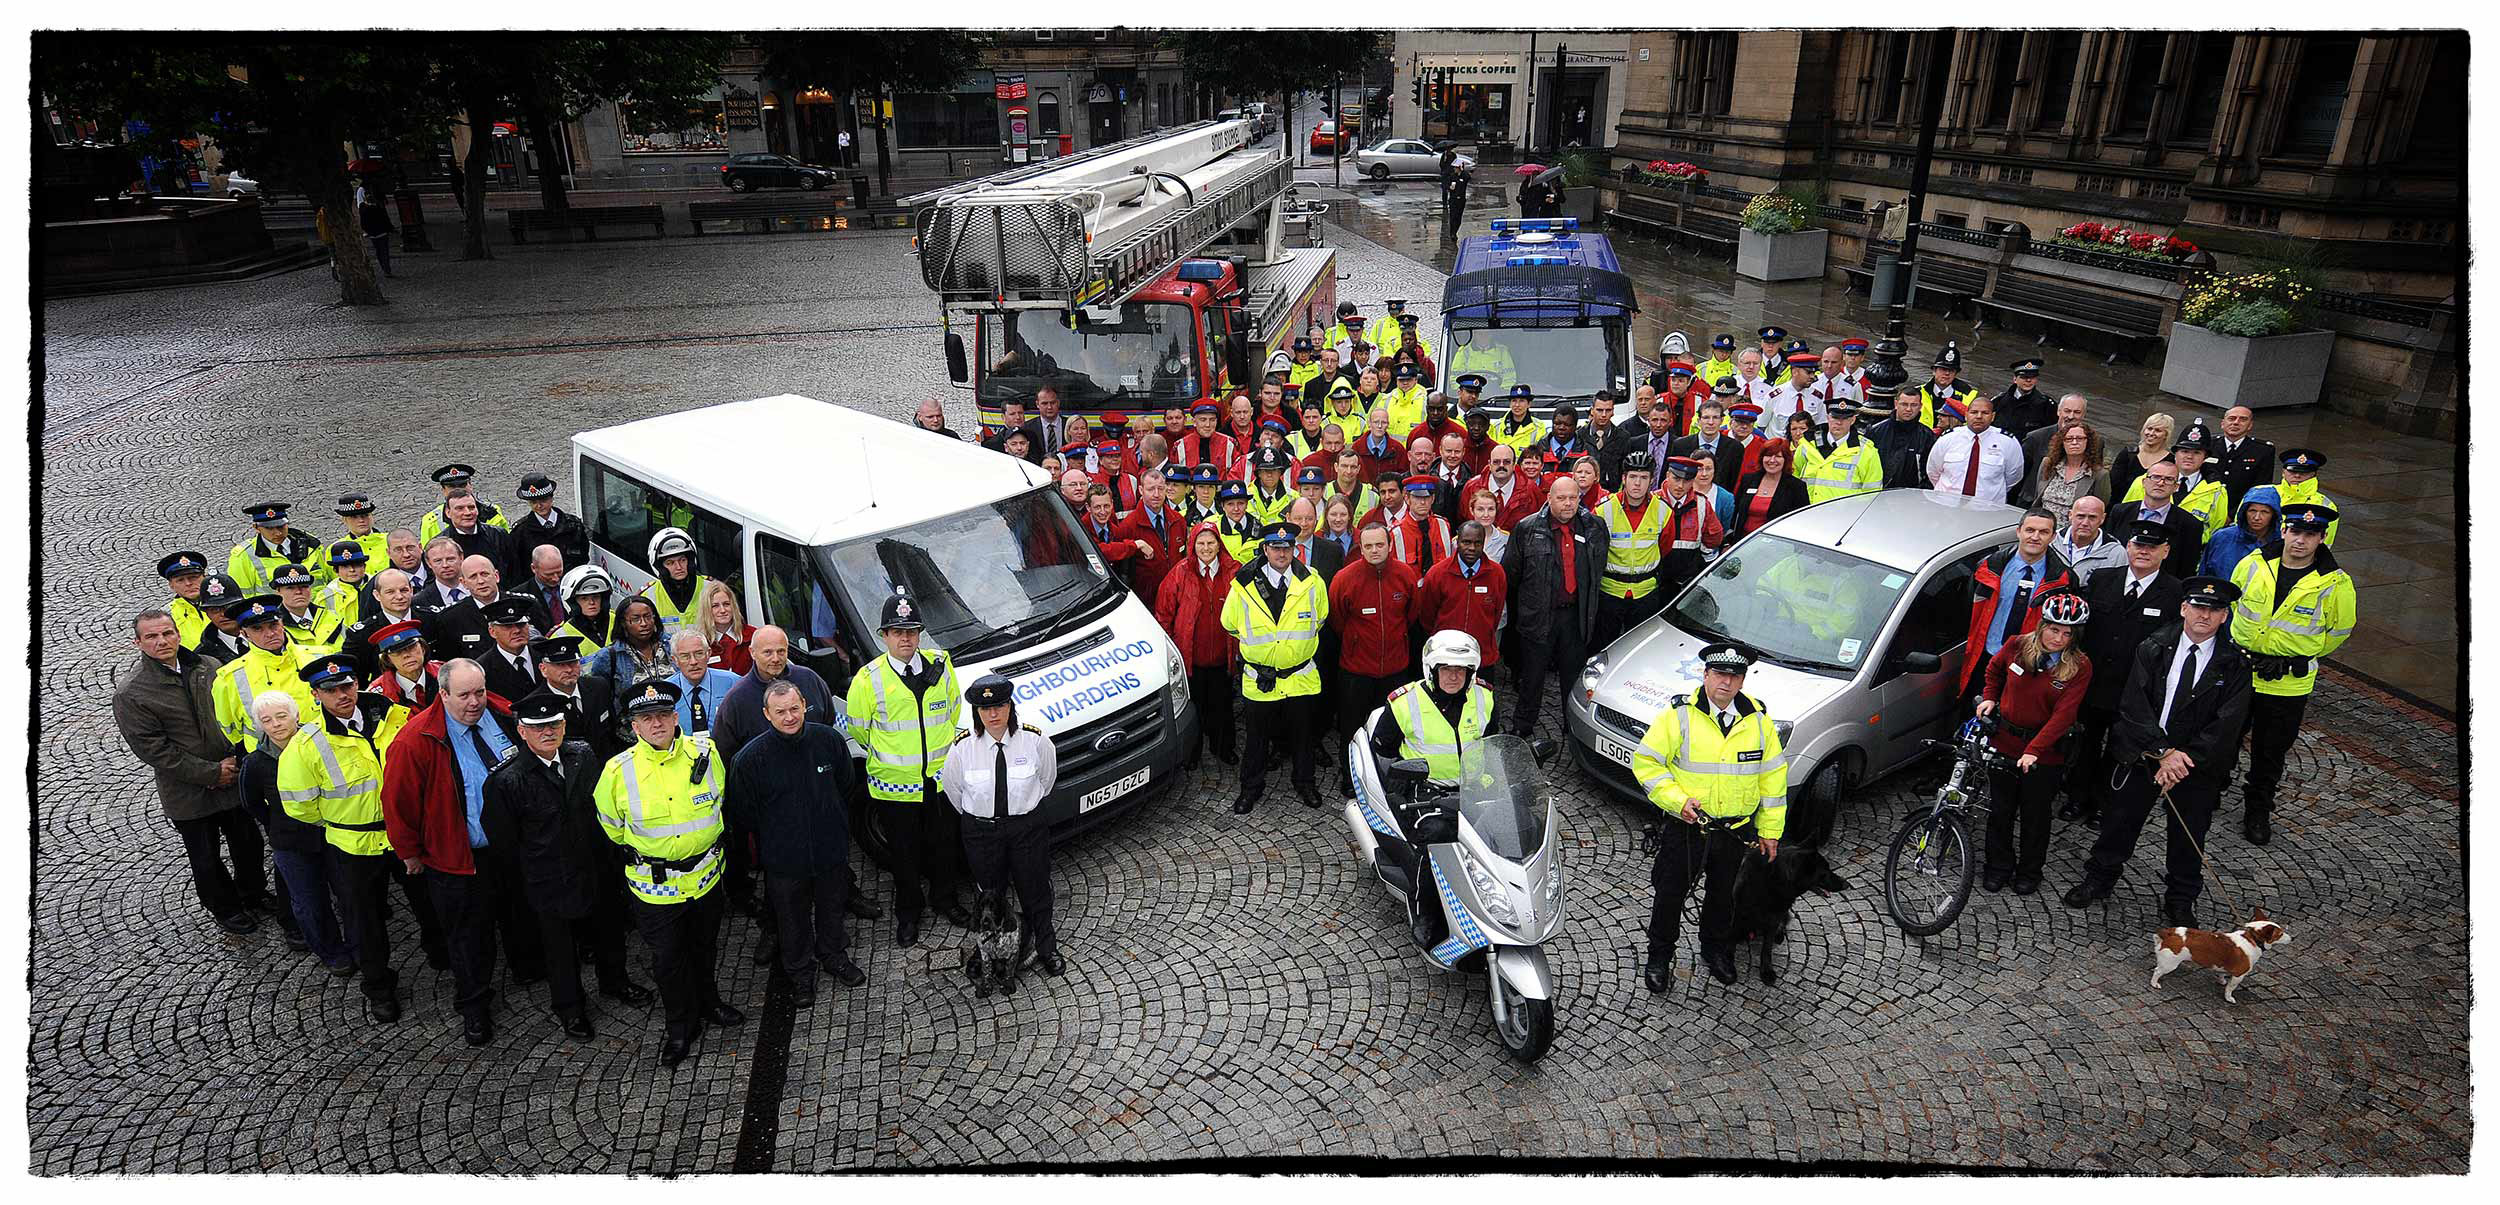 Members of the police, fire, ambulance and rescue services pose for a photograph at Manchester Town Hall.